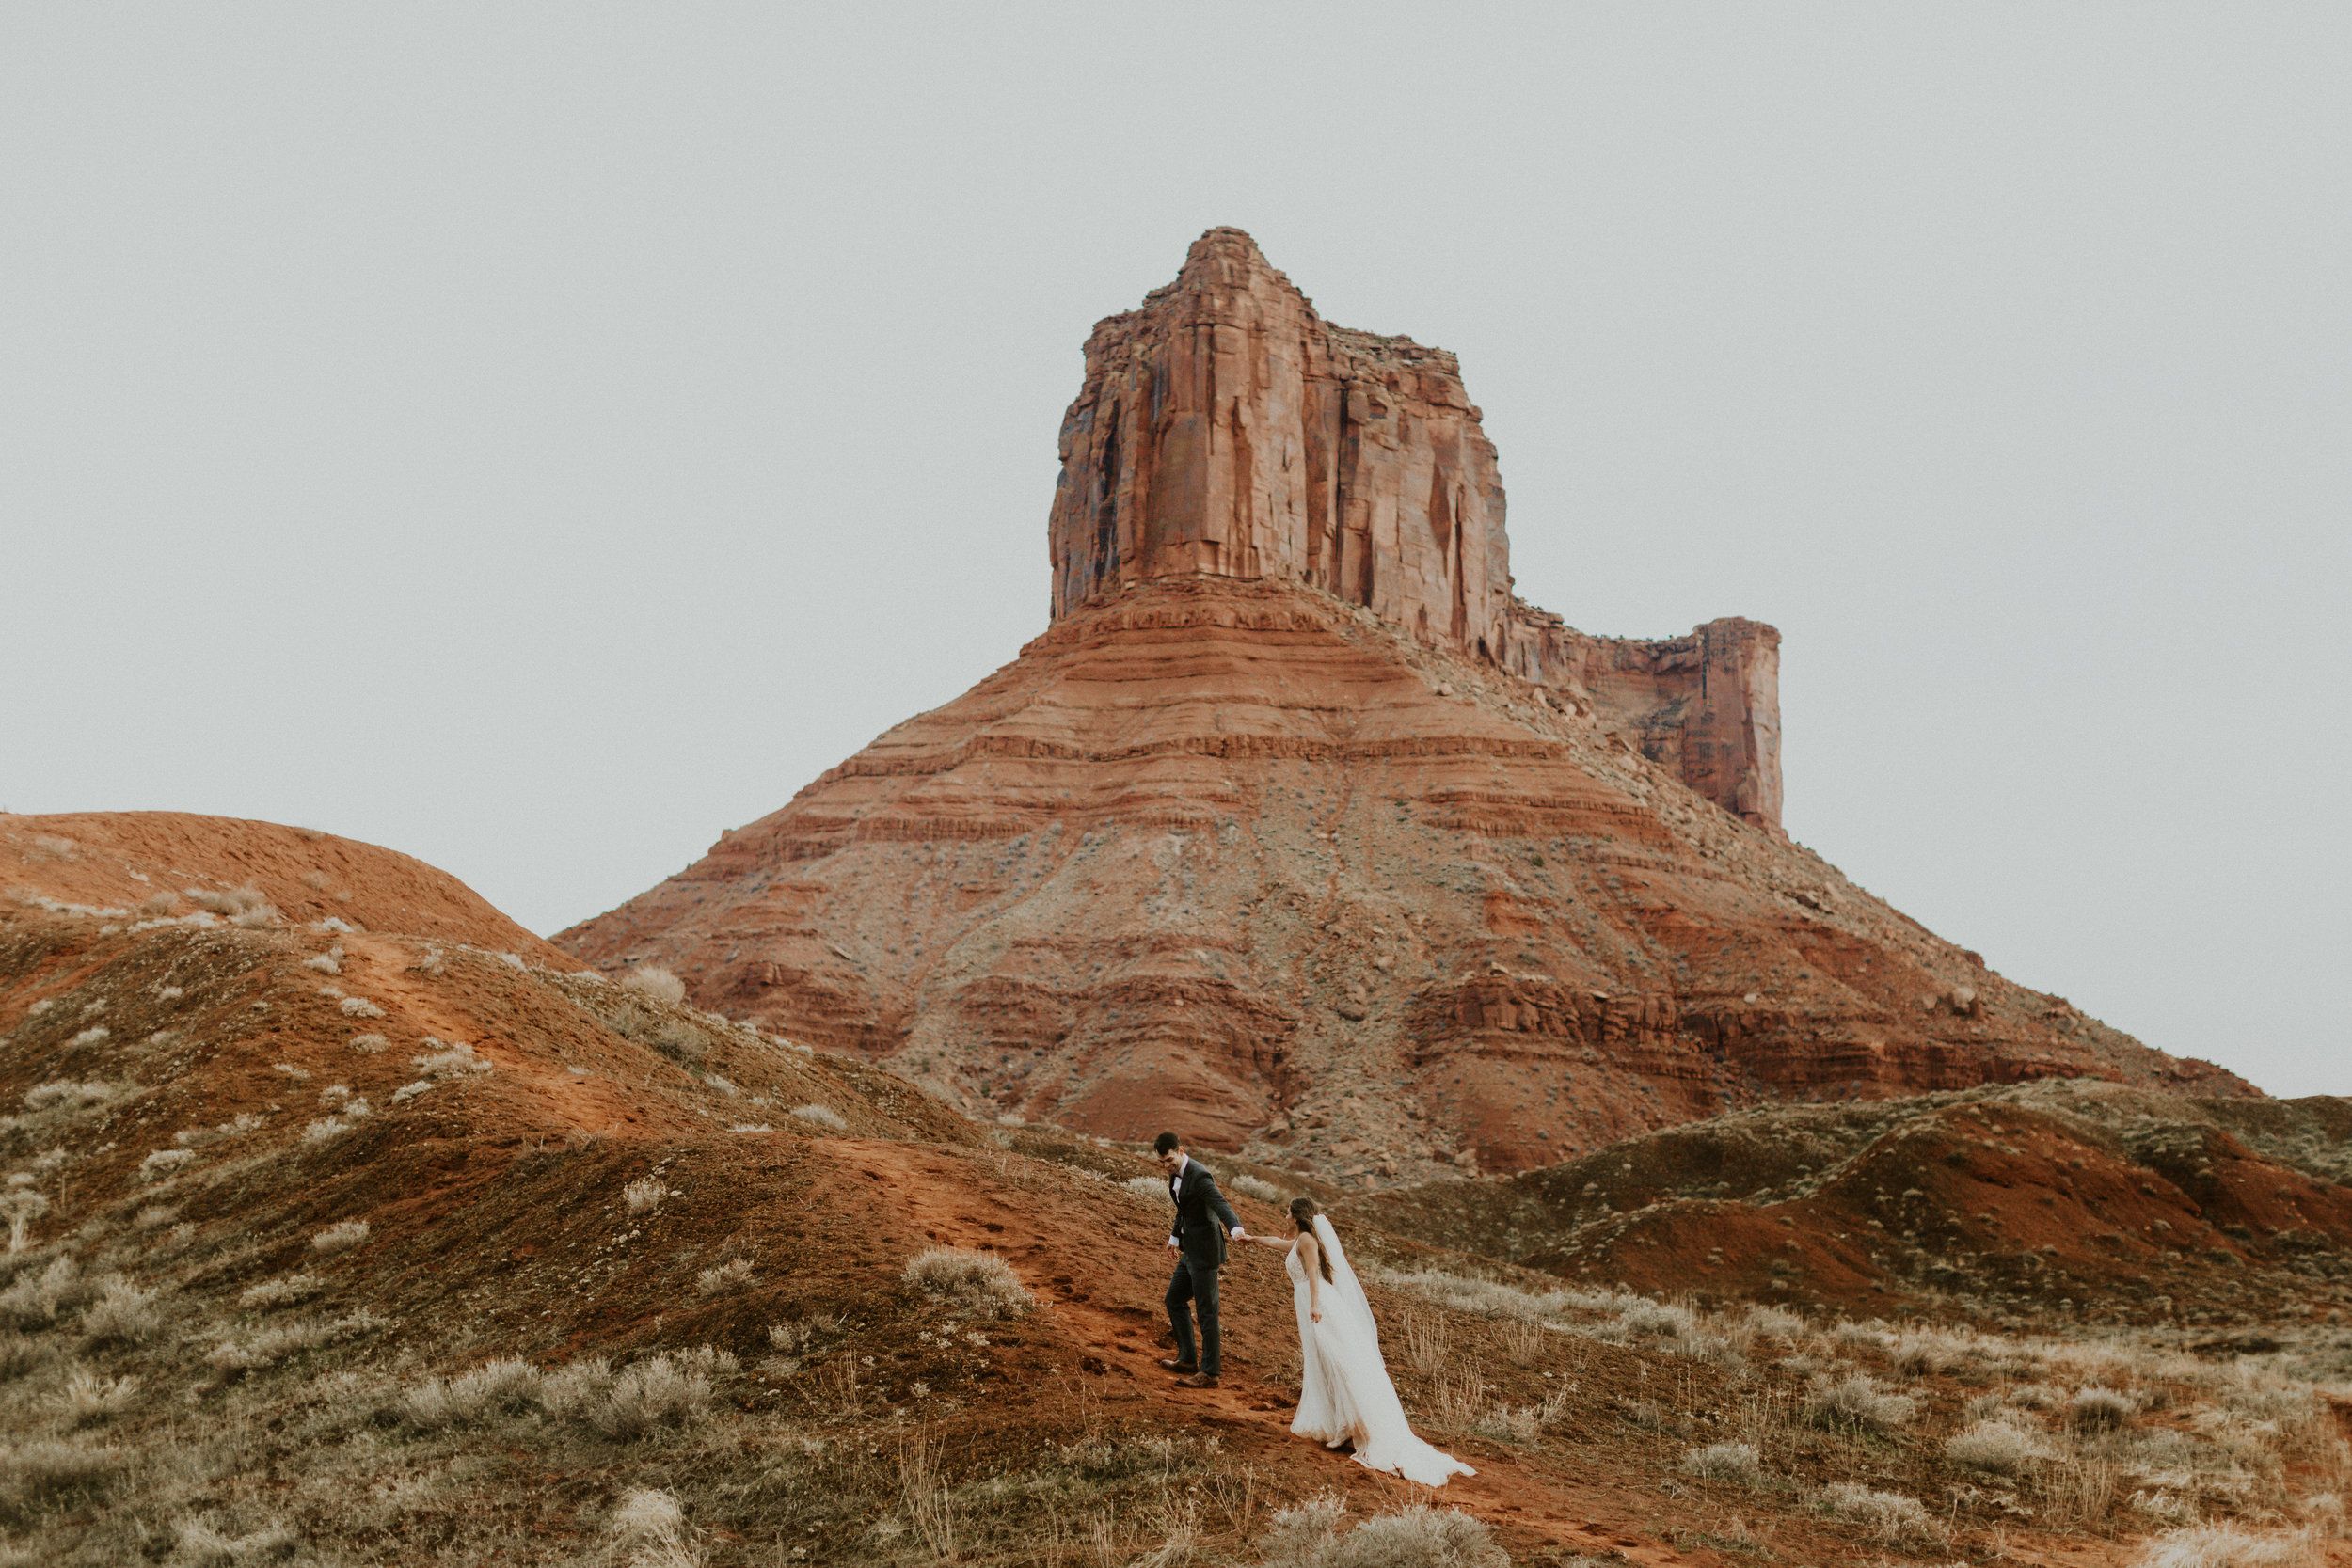 How to Make an Elopement Timeline